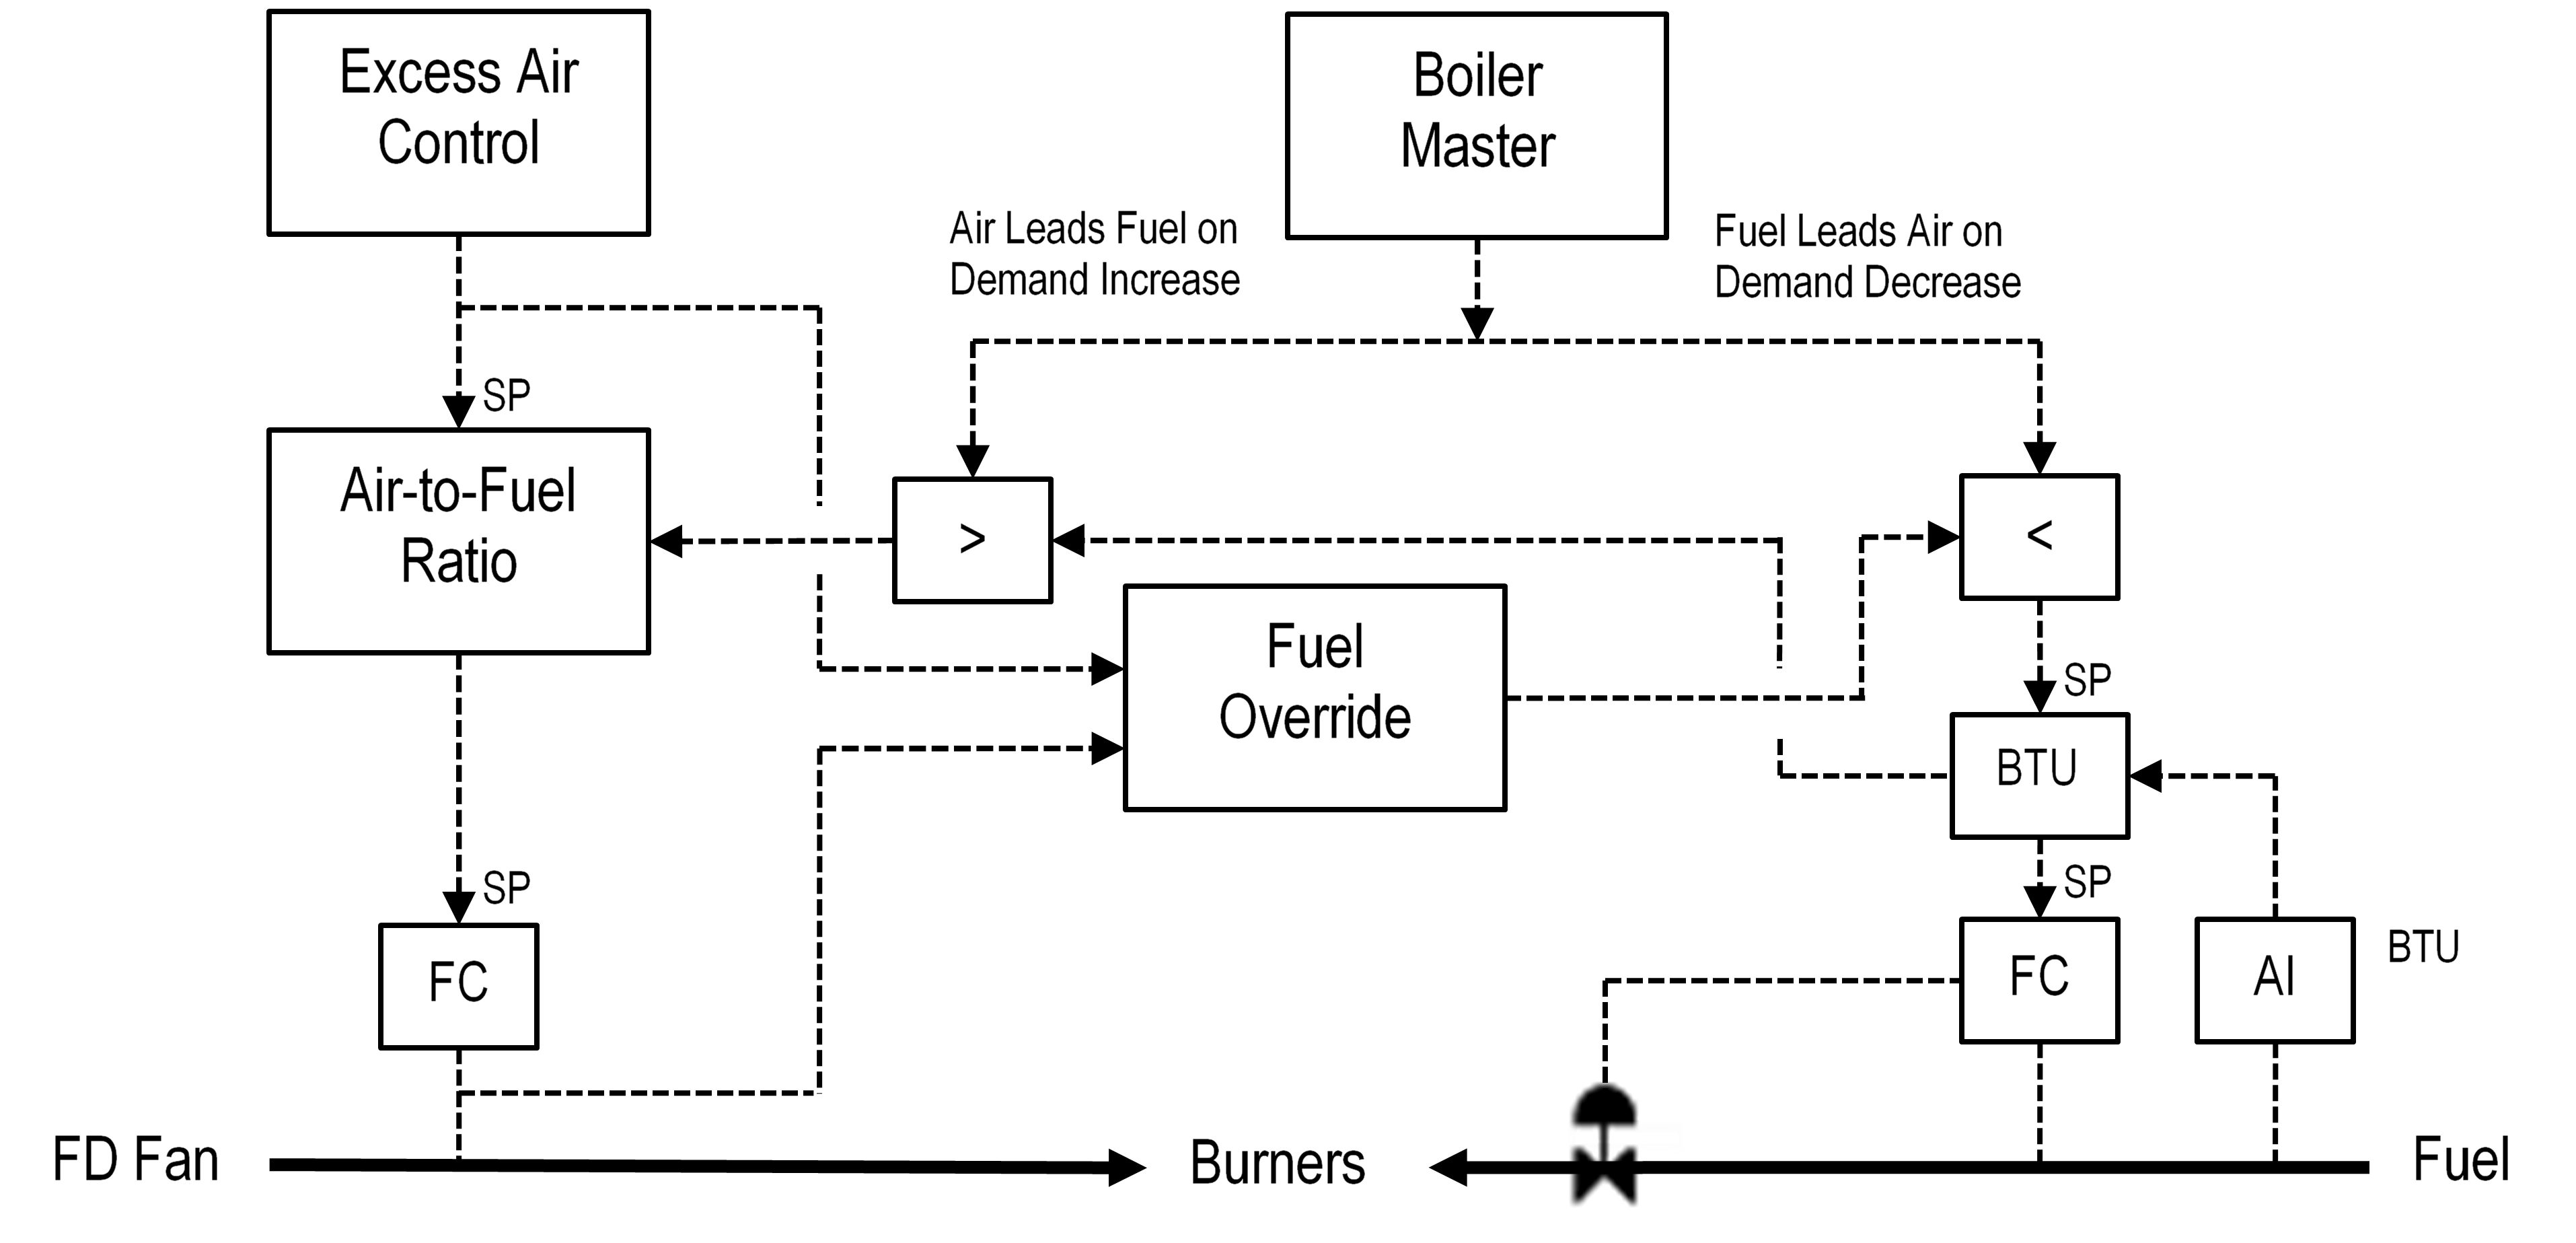 Figure 6 Combustion Controls with Fuel BTU Compensation